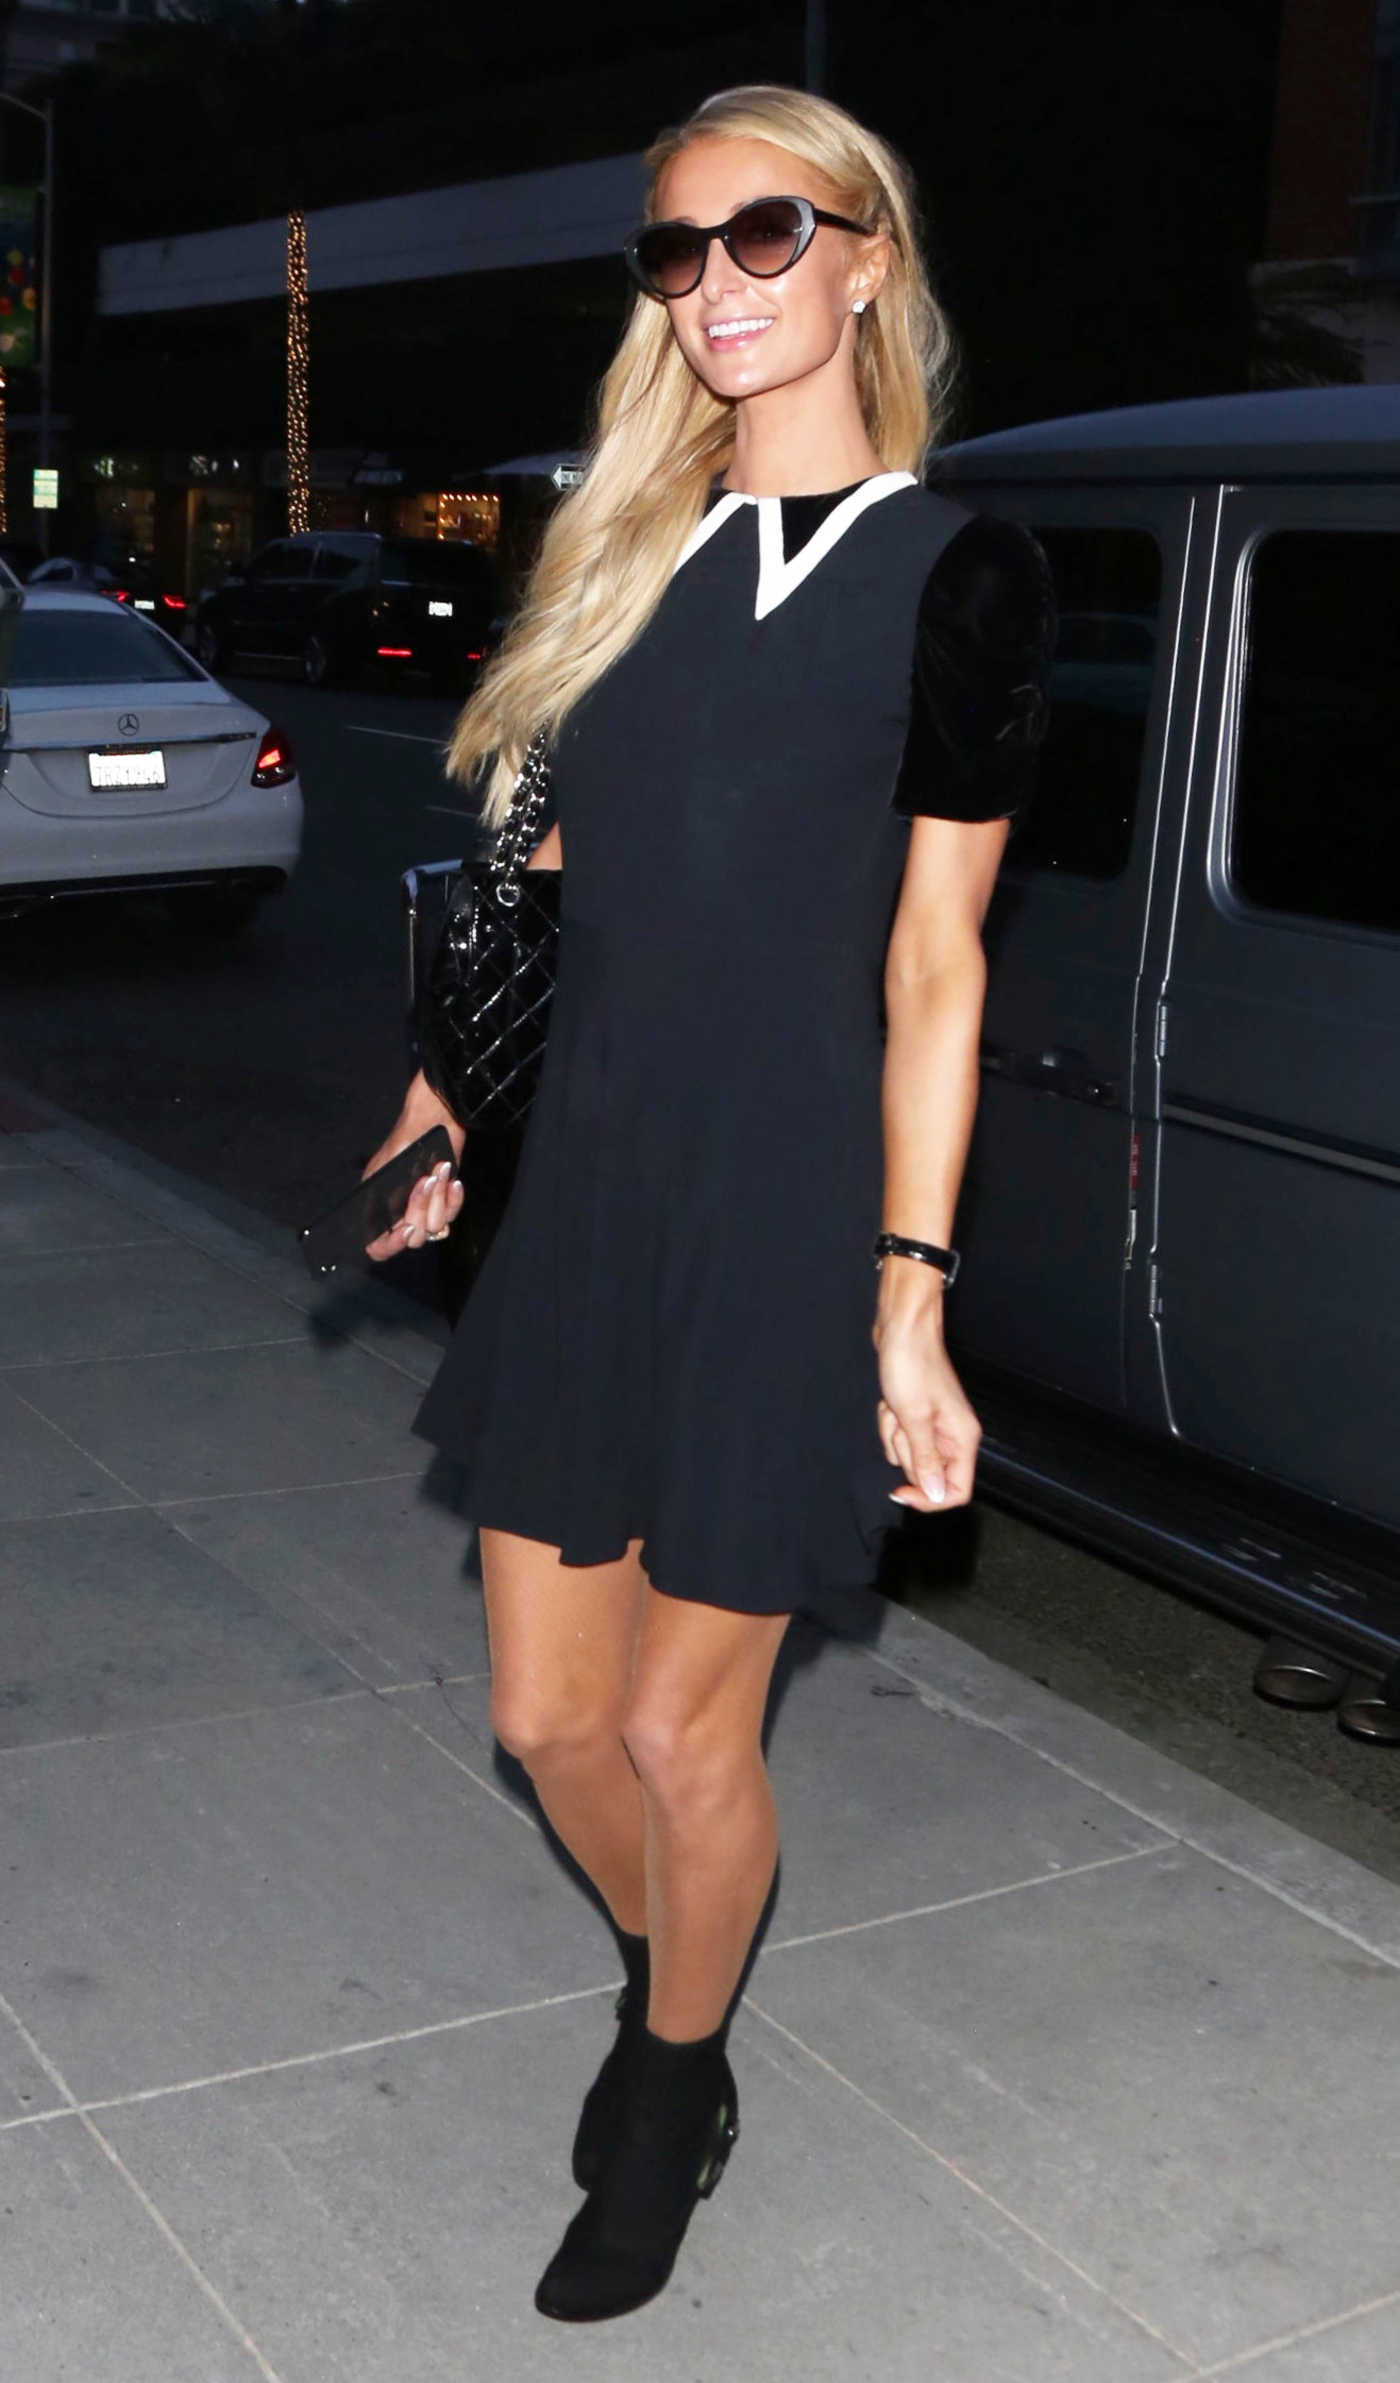 Paris Hilton in a Short Black Dress Was Seen Out in Beverly Hills 12/14/2018